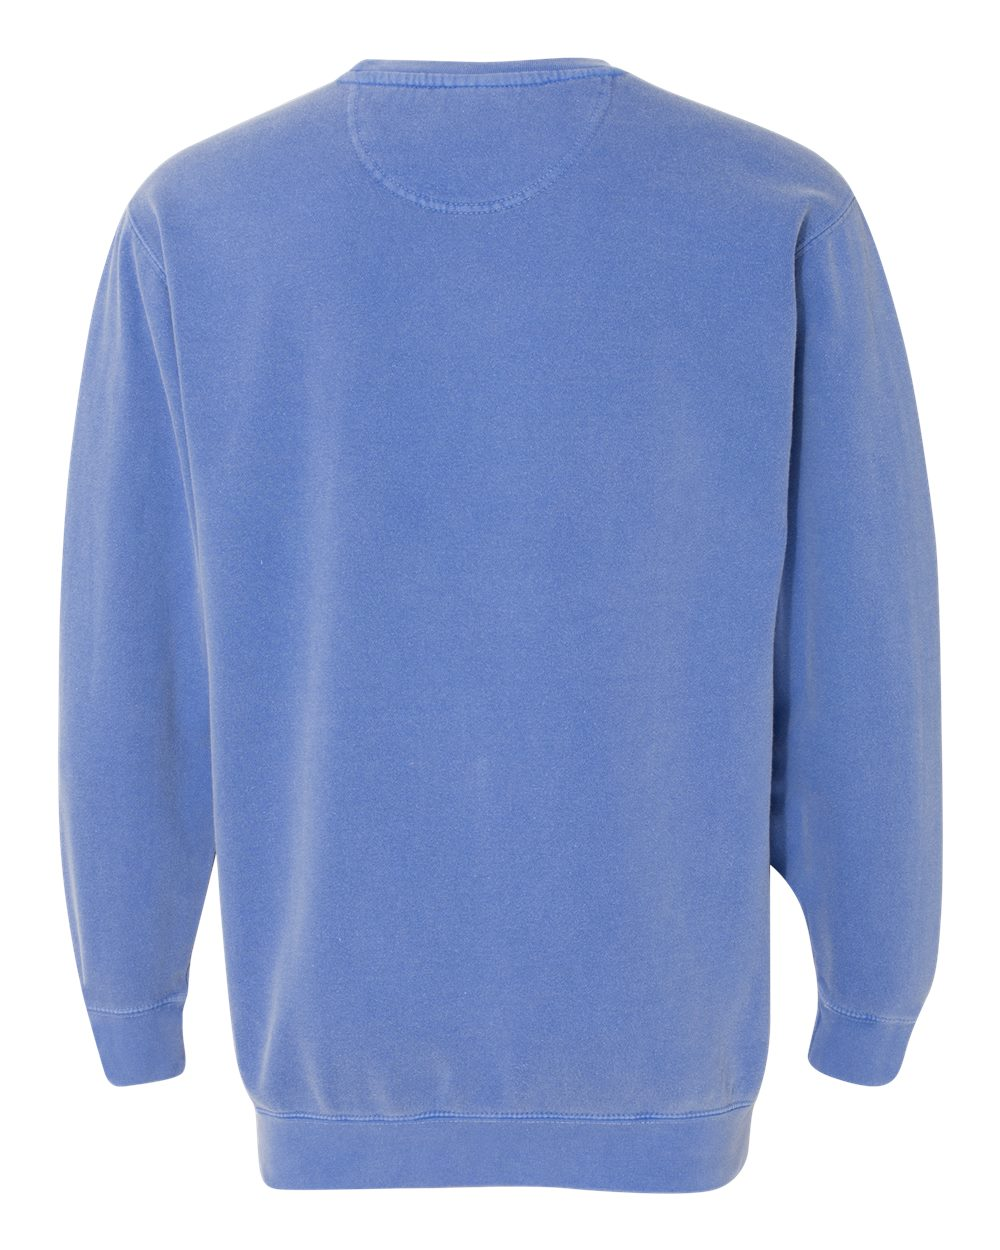 Comfort-Colors-Mens-Garment-Dyed-Ringspun-Crewneck-Sweatshirt-1566-up-to-3XL miniature 31